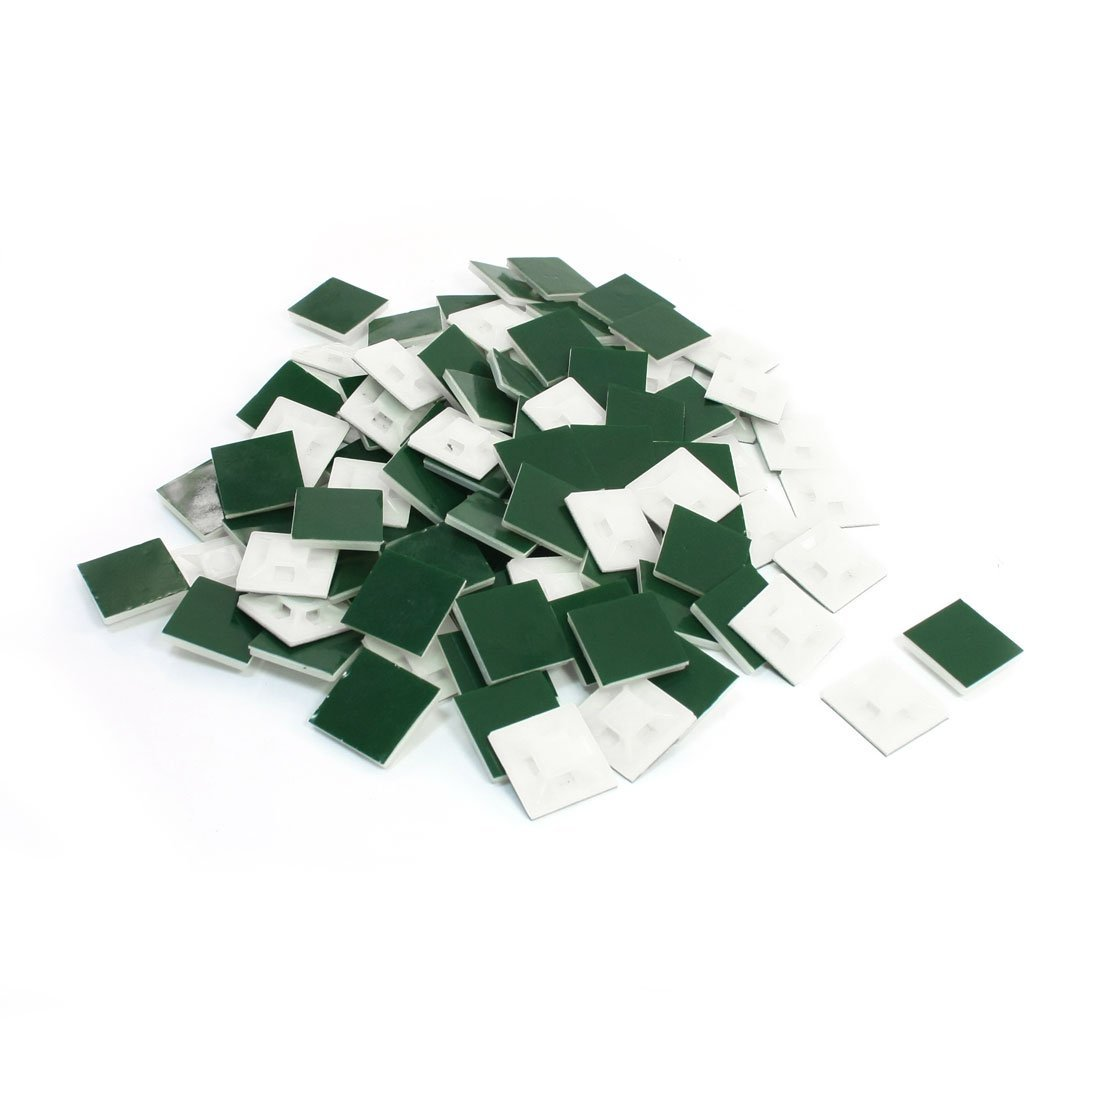 // Uxcell a13123100ux0056 Ltd Uxcell Square Shape Self-Adhesive Cable Tie Mount Base 100pcs Dragonmarts Co 21x21mm